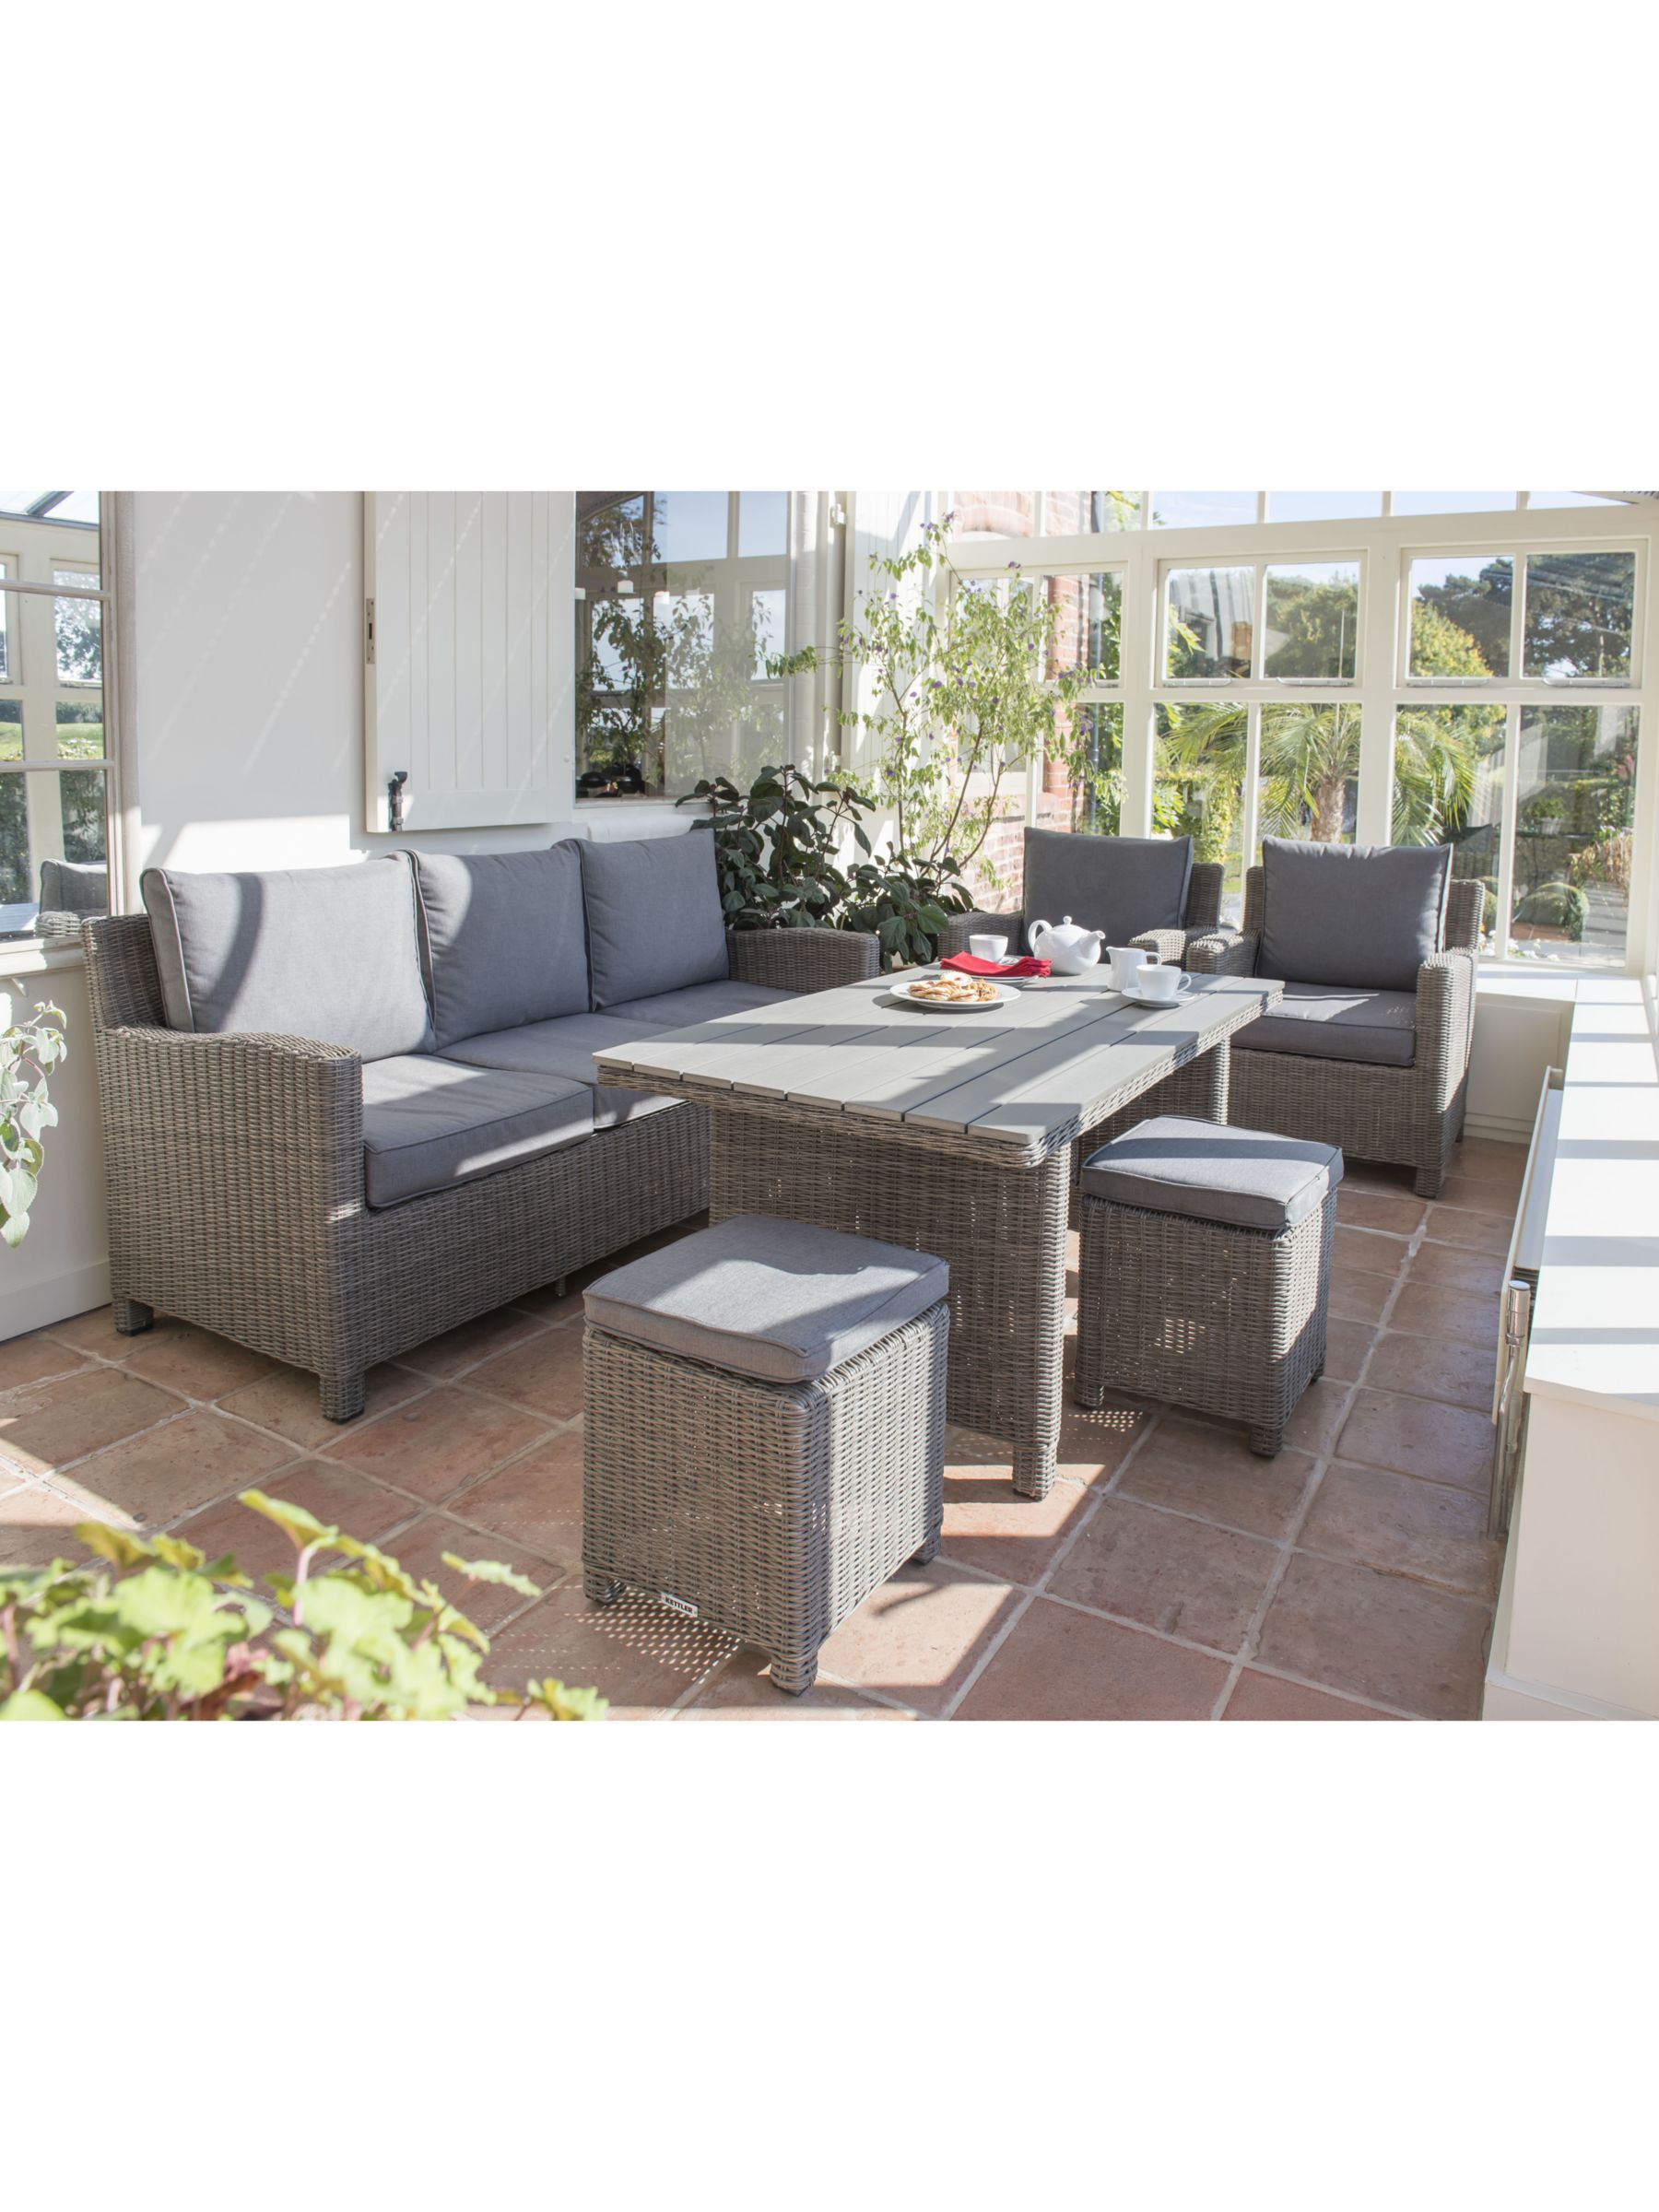 KETTLER Palma 8 Seater Garden Lounge / Dining Table and Chairs Set